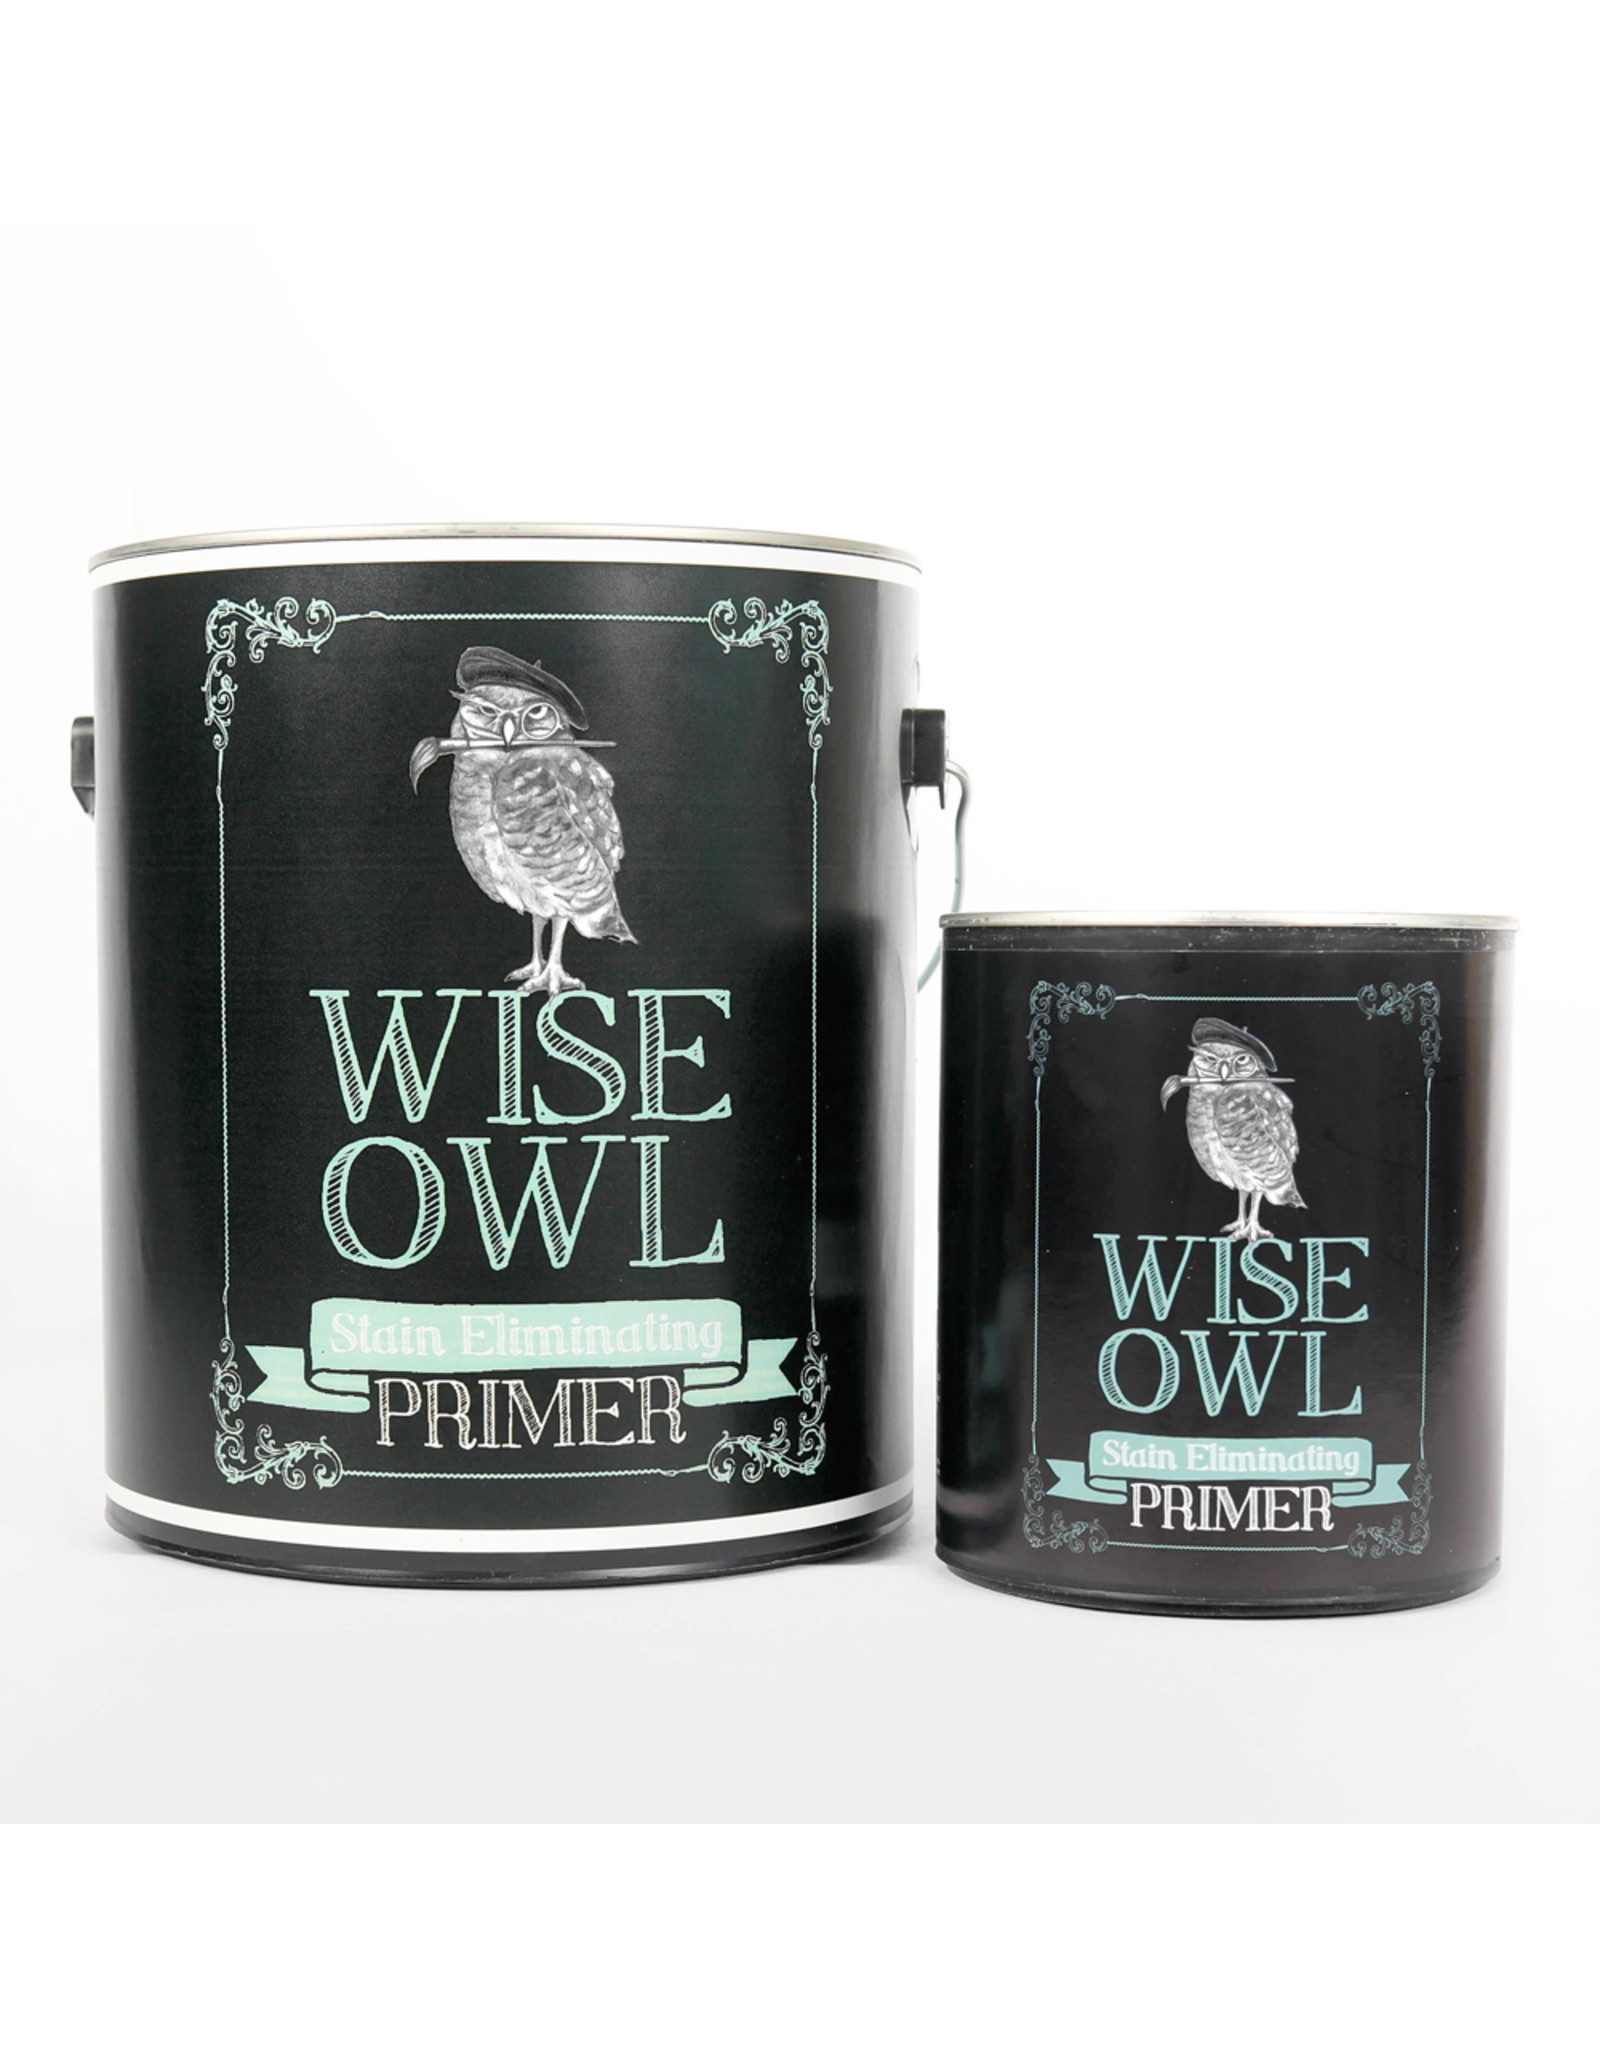 Wise Owl Paint Stain Eliminating Primer-Clear Quart